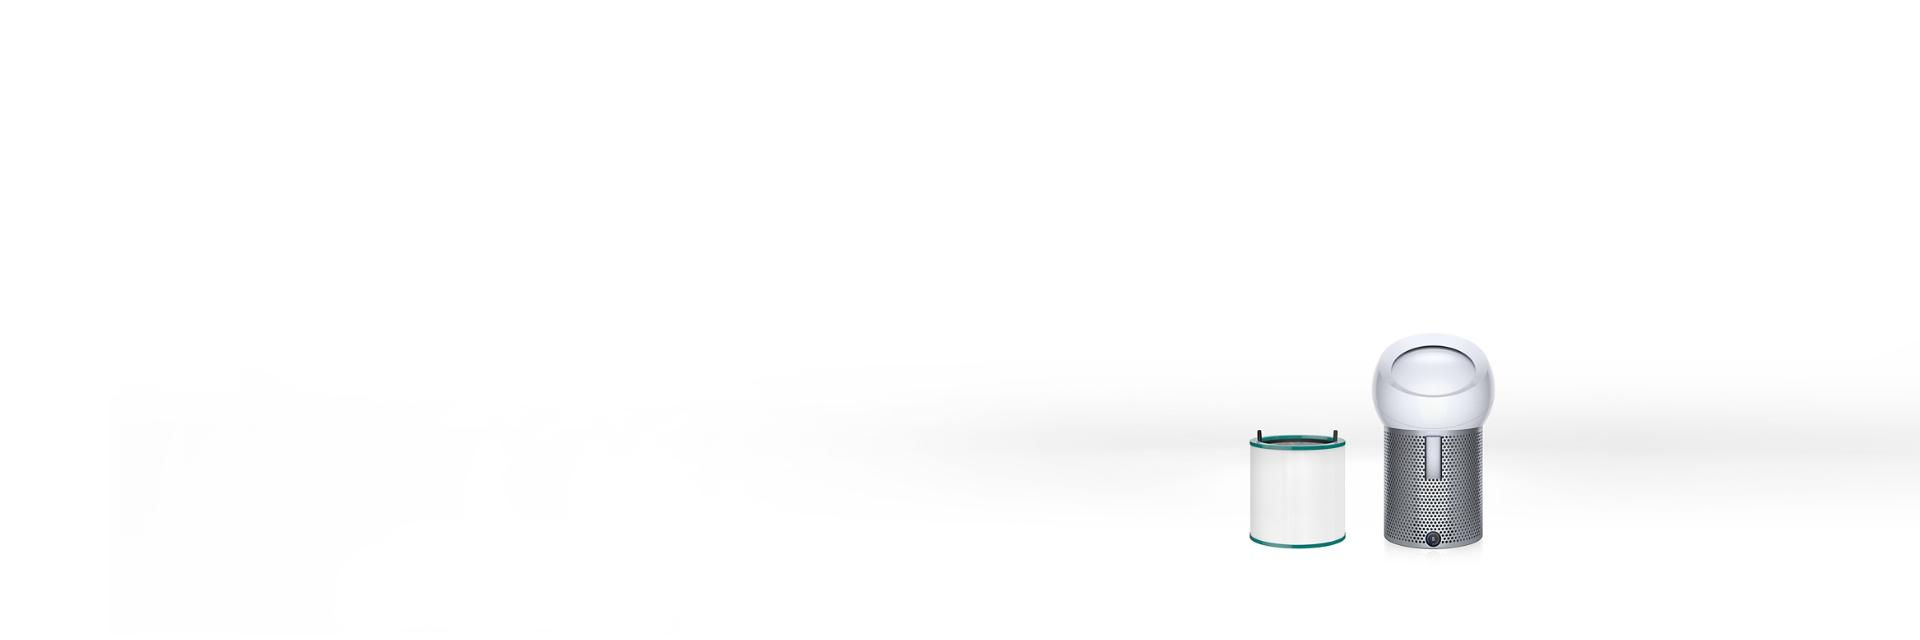 A Dyson purifier range in a row including a filter